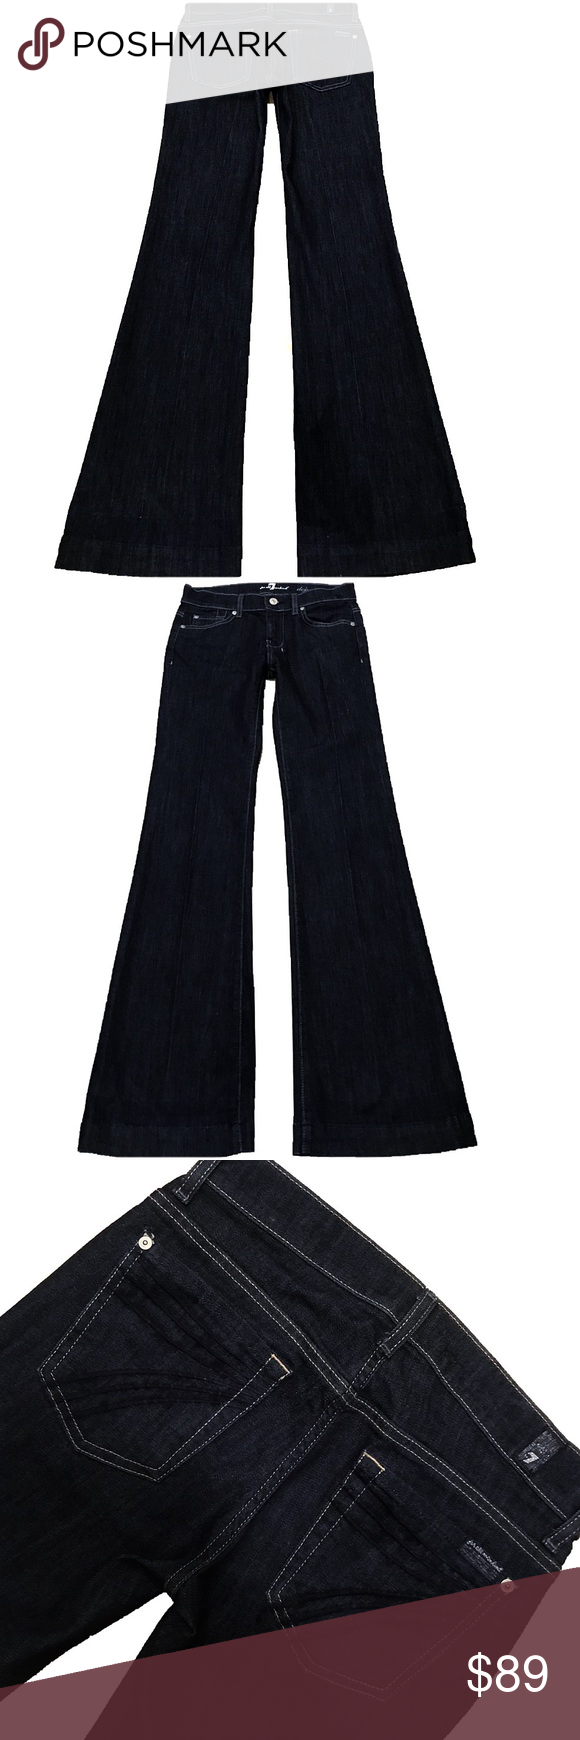 """7 For All Mankind """"Dojo"""" SZ 25 Inseam 35"""" (#366) NWOT Cute Pair Of 7 For All Mankind """"Dojo"""" Women's SZ 25 Flare Leg Dark Wash Blue Stitched 7 Low-Rise Stretch Jeans. XXL Inseam 35"""" Style# JU115Y702C Cut# 005777 Measurements: Waist: 25"""" Hips: 35"""" Front rise: 8"""" Back rise: 12.5"""" Inseam: 35"""" 7 For All Mankind Jeans Flare & Wide Leg"""